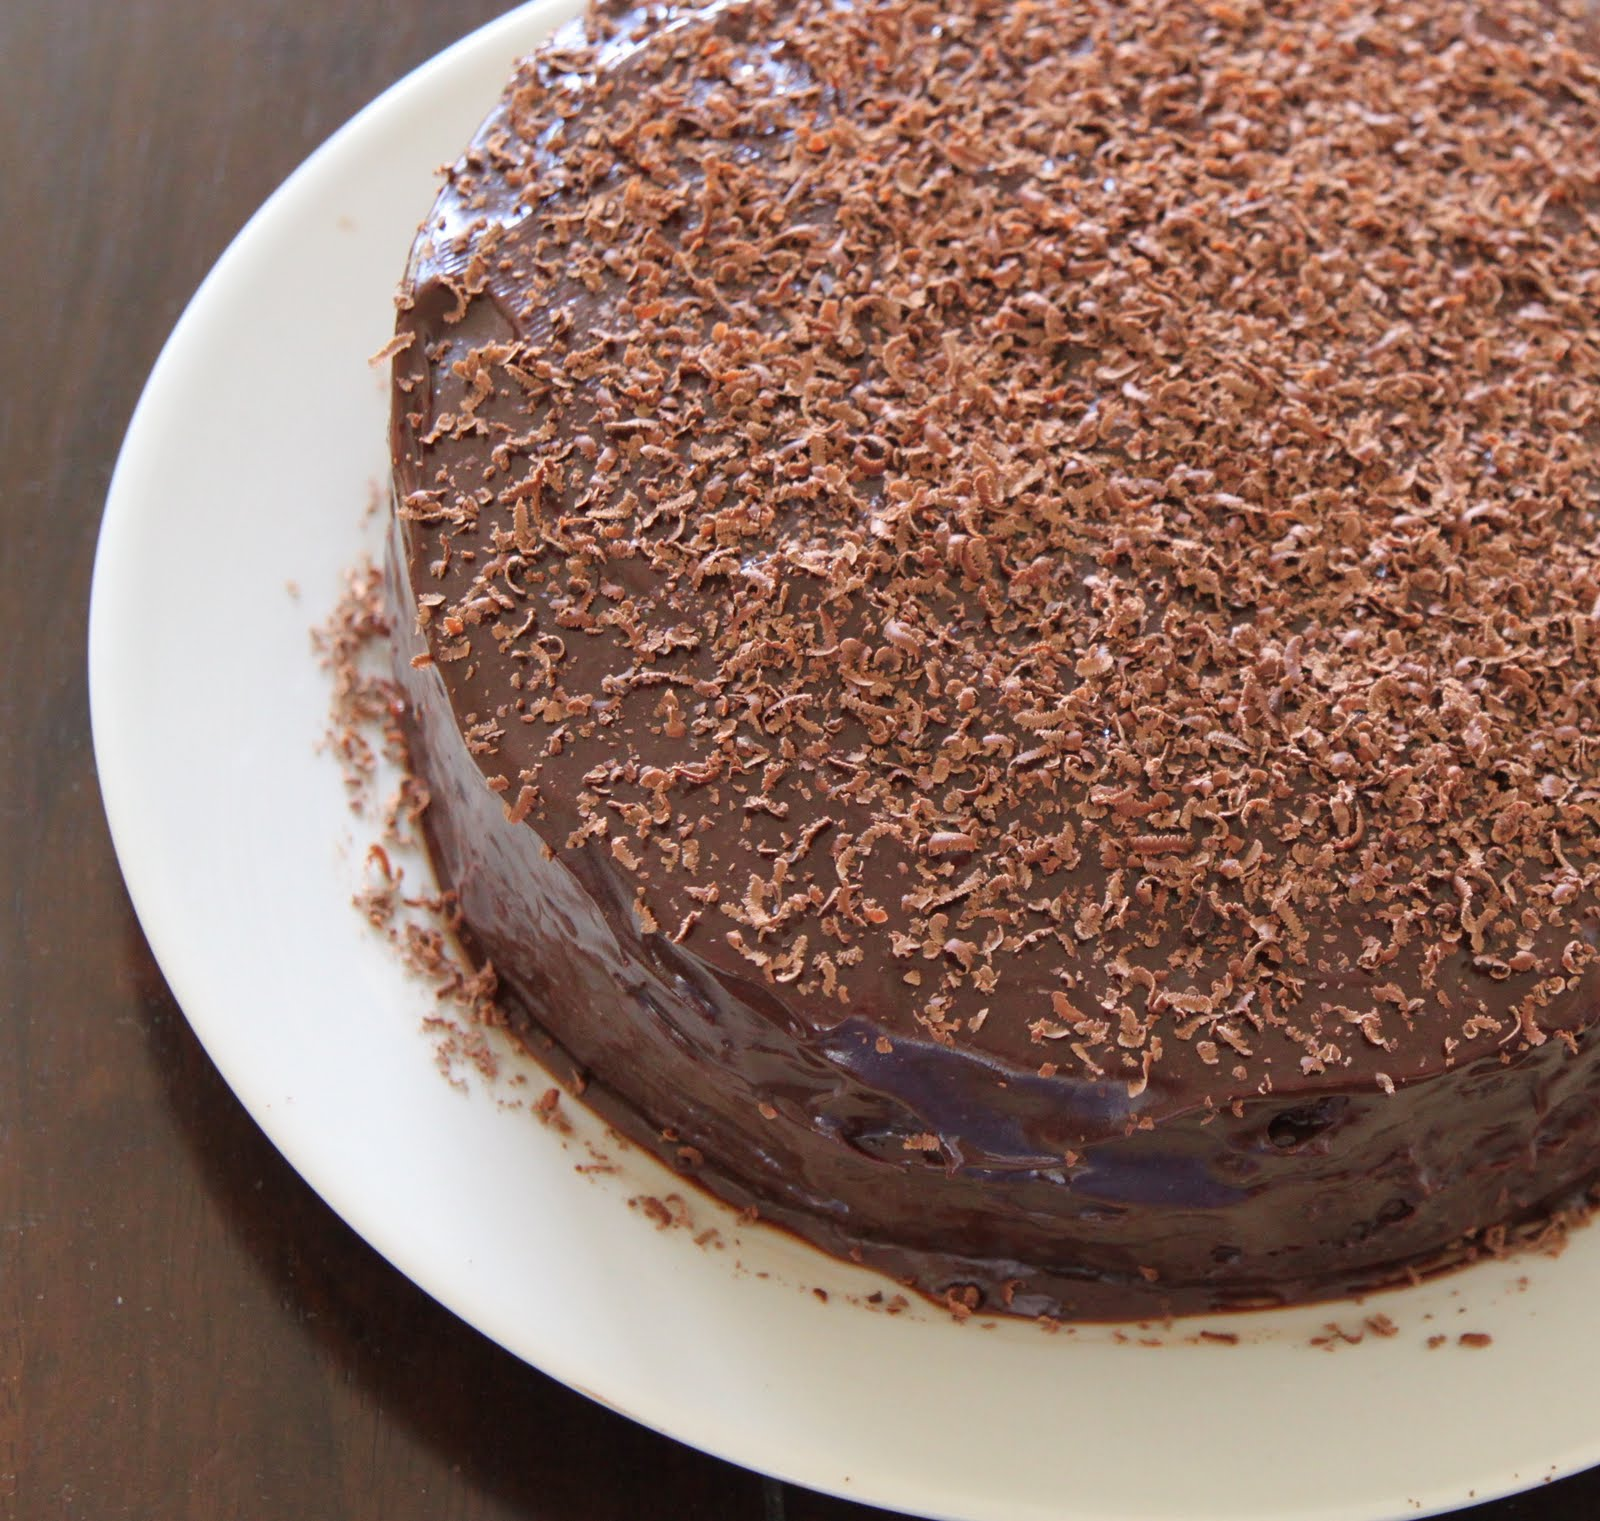 My Kitchen Antics: Double layer chocolate cake filled and frosted with ...